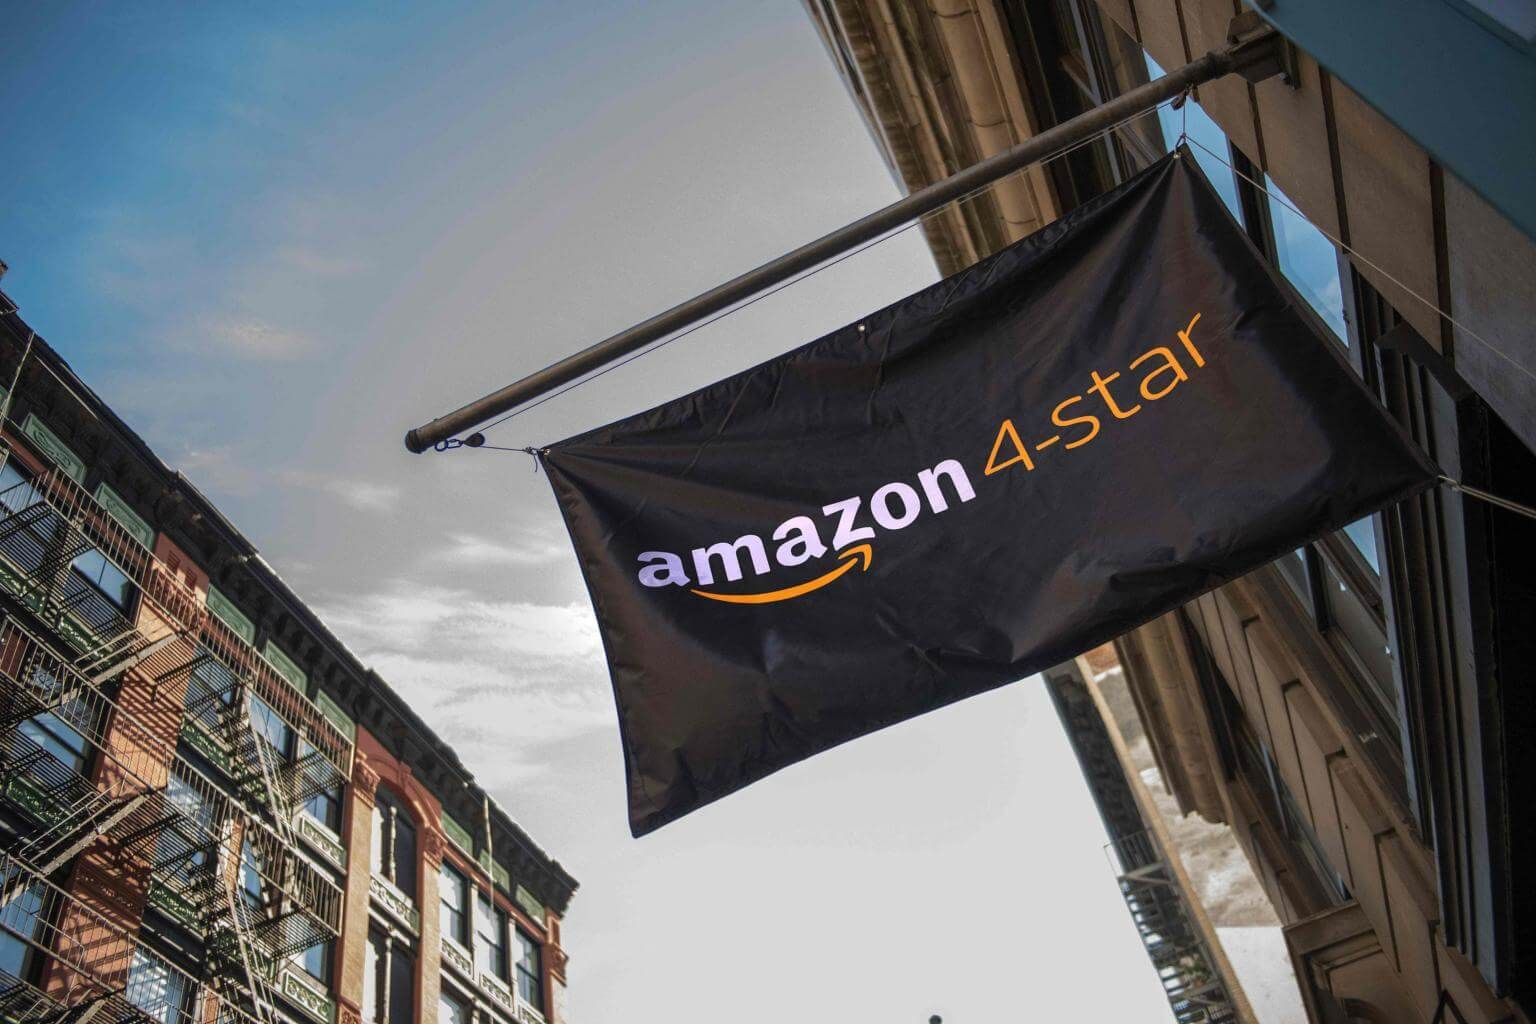 Amazon opens new store, 4-Star recommendations